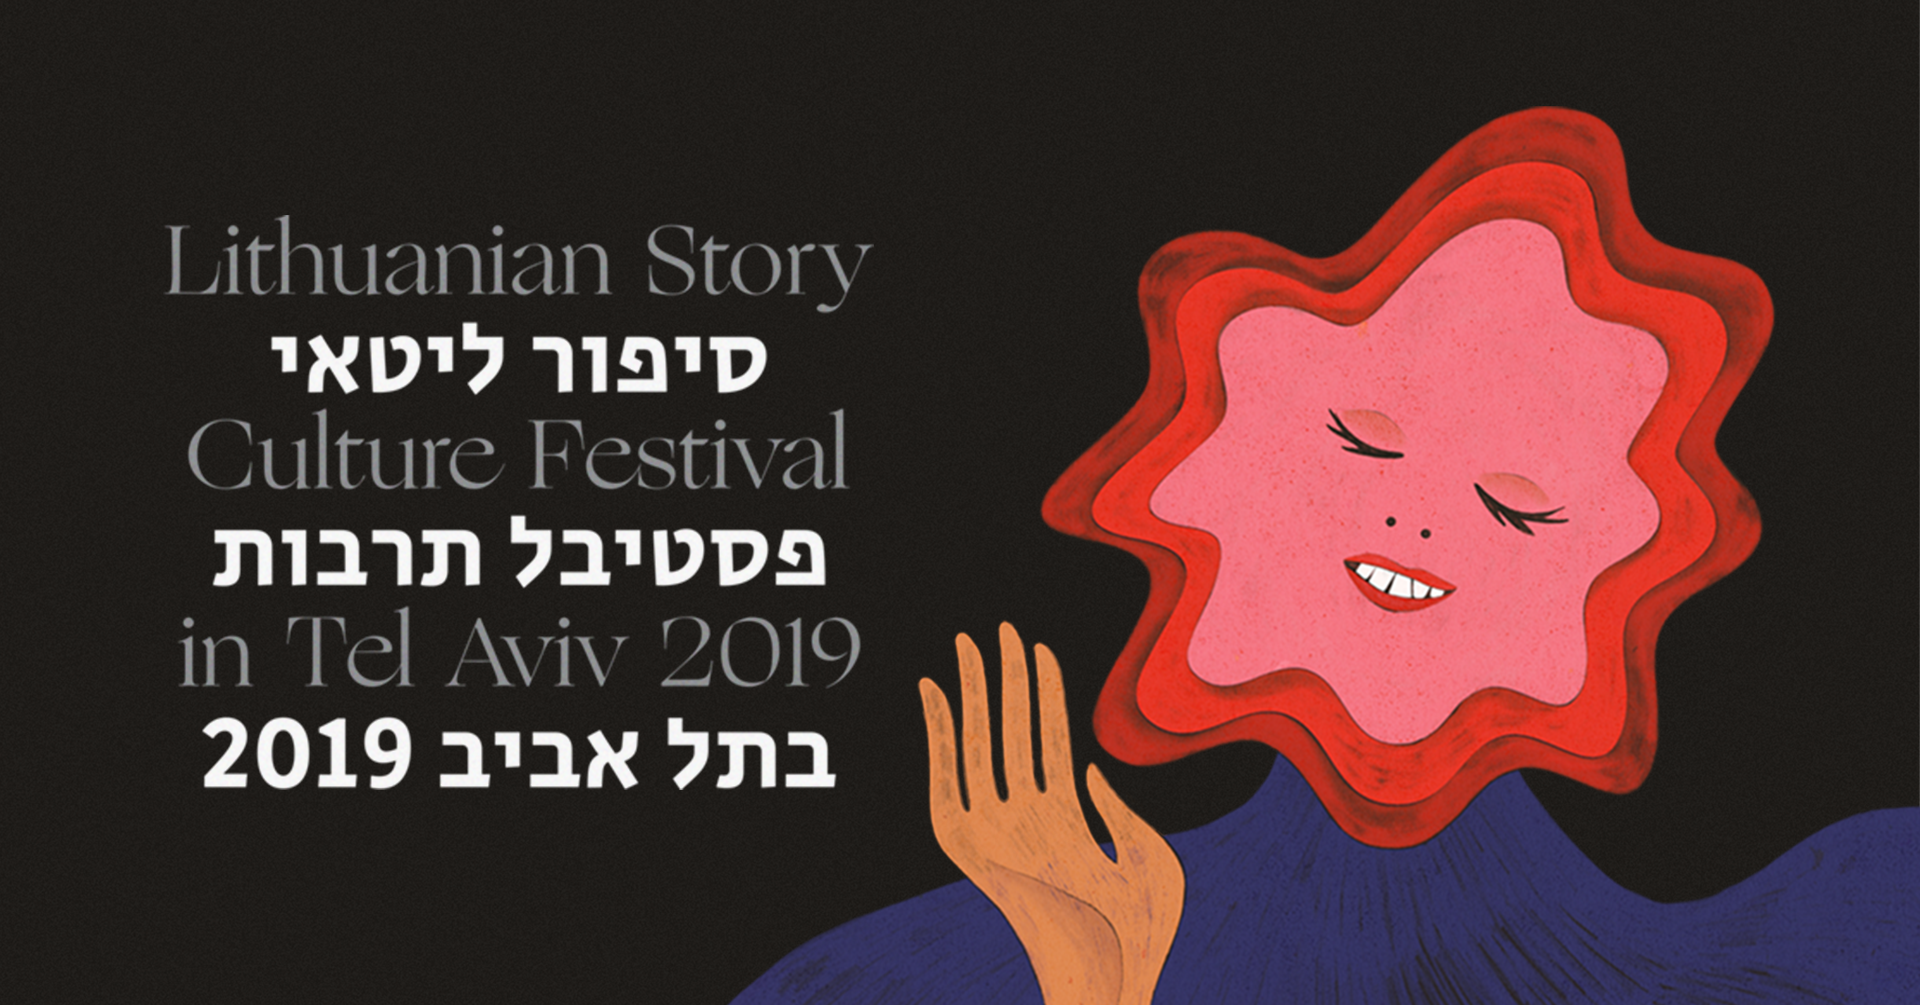 Lithuanian Story. Culture Festival in Tel Aviv 2019